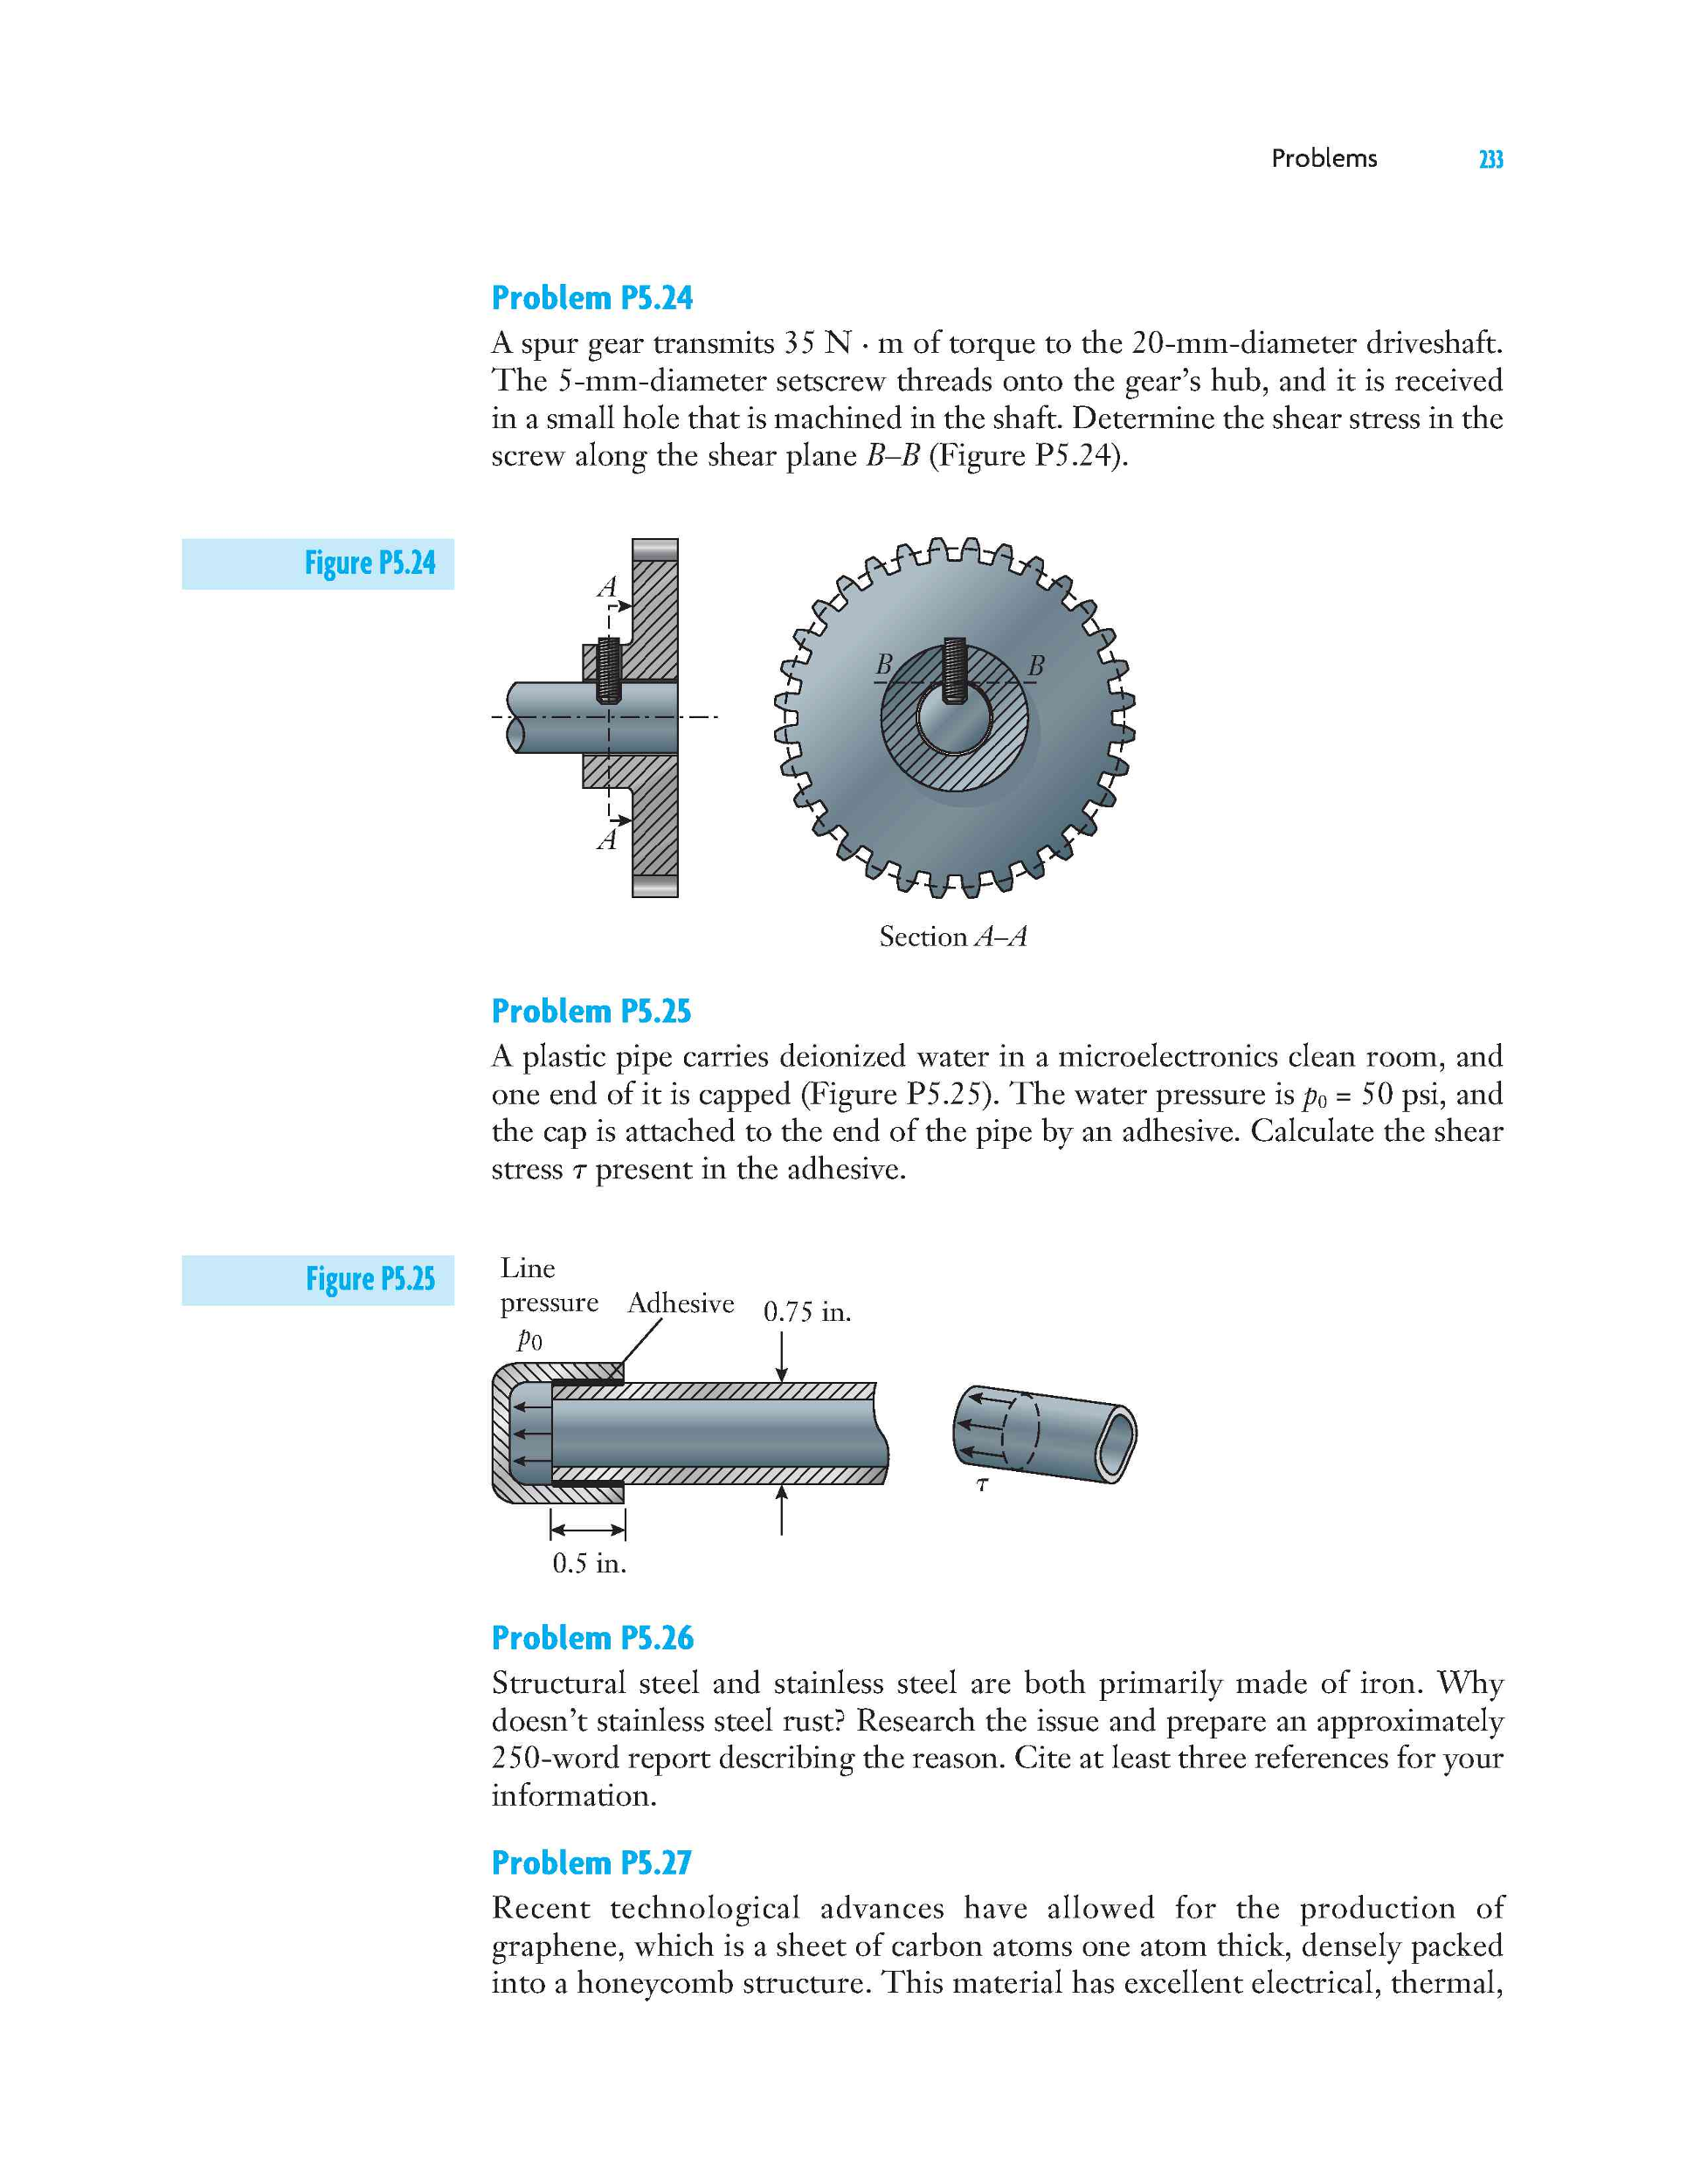 Solved a spur gear transmits n middot m of torque to t